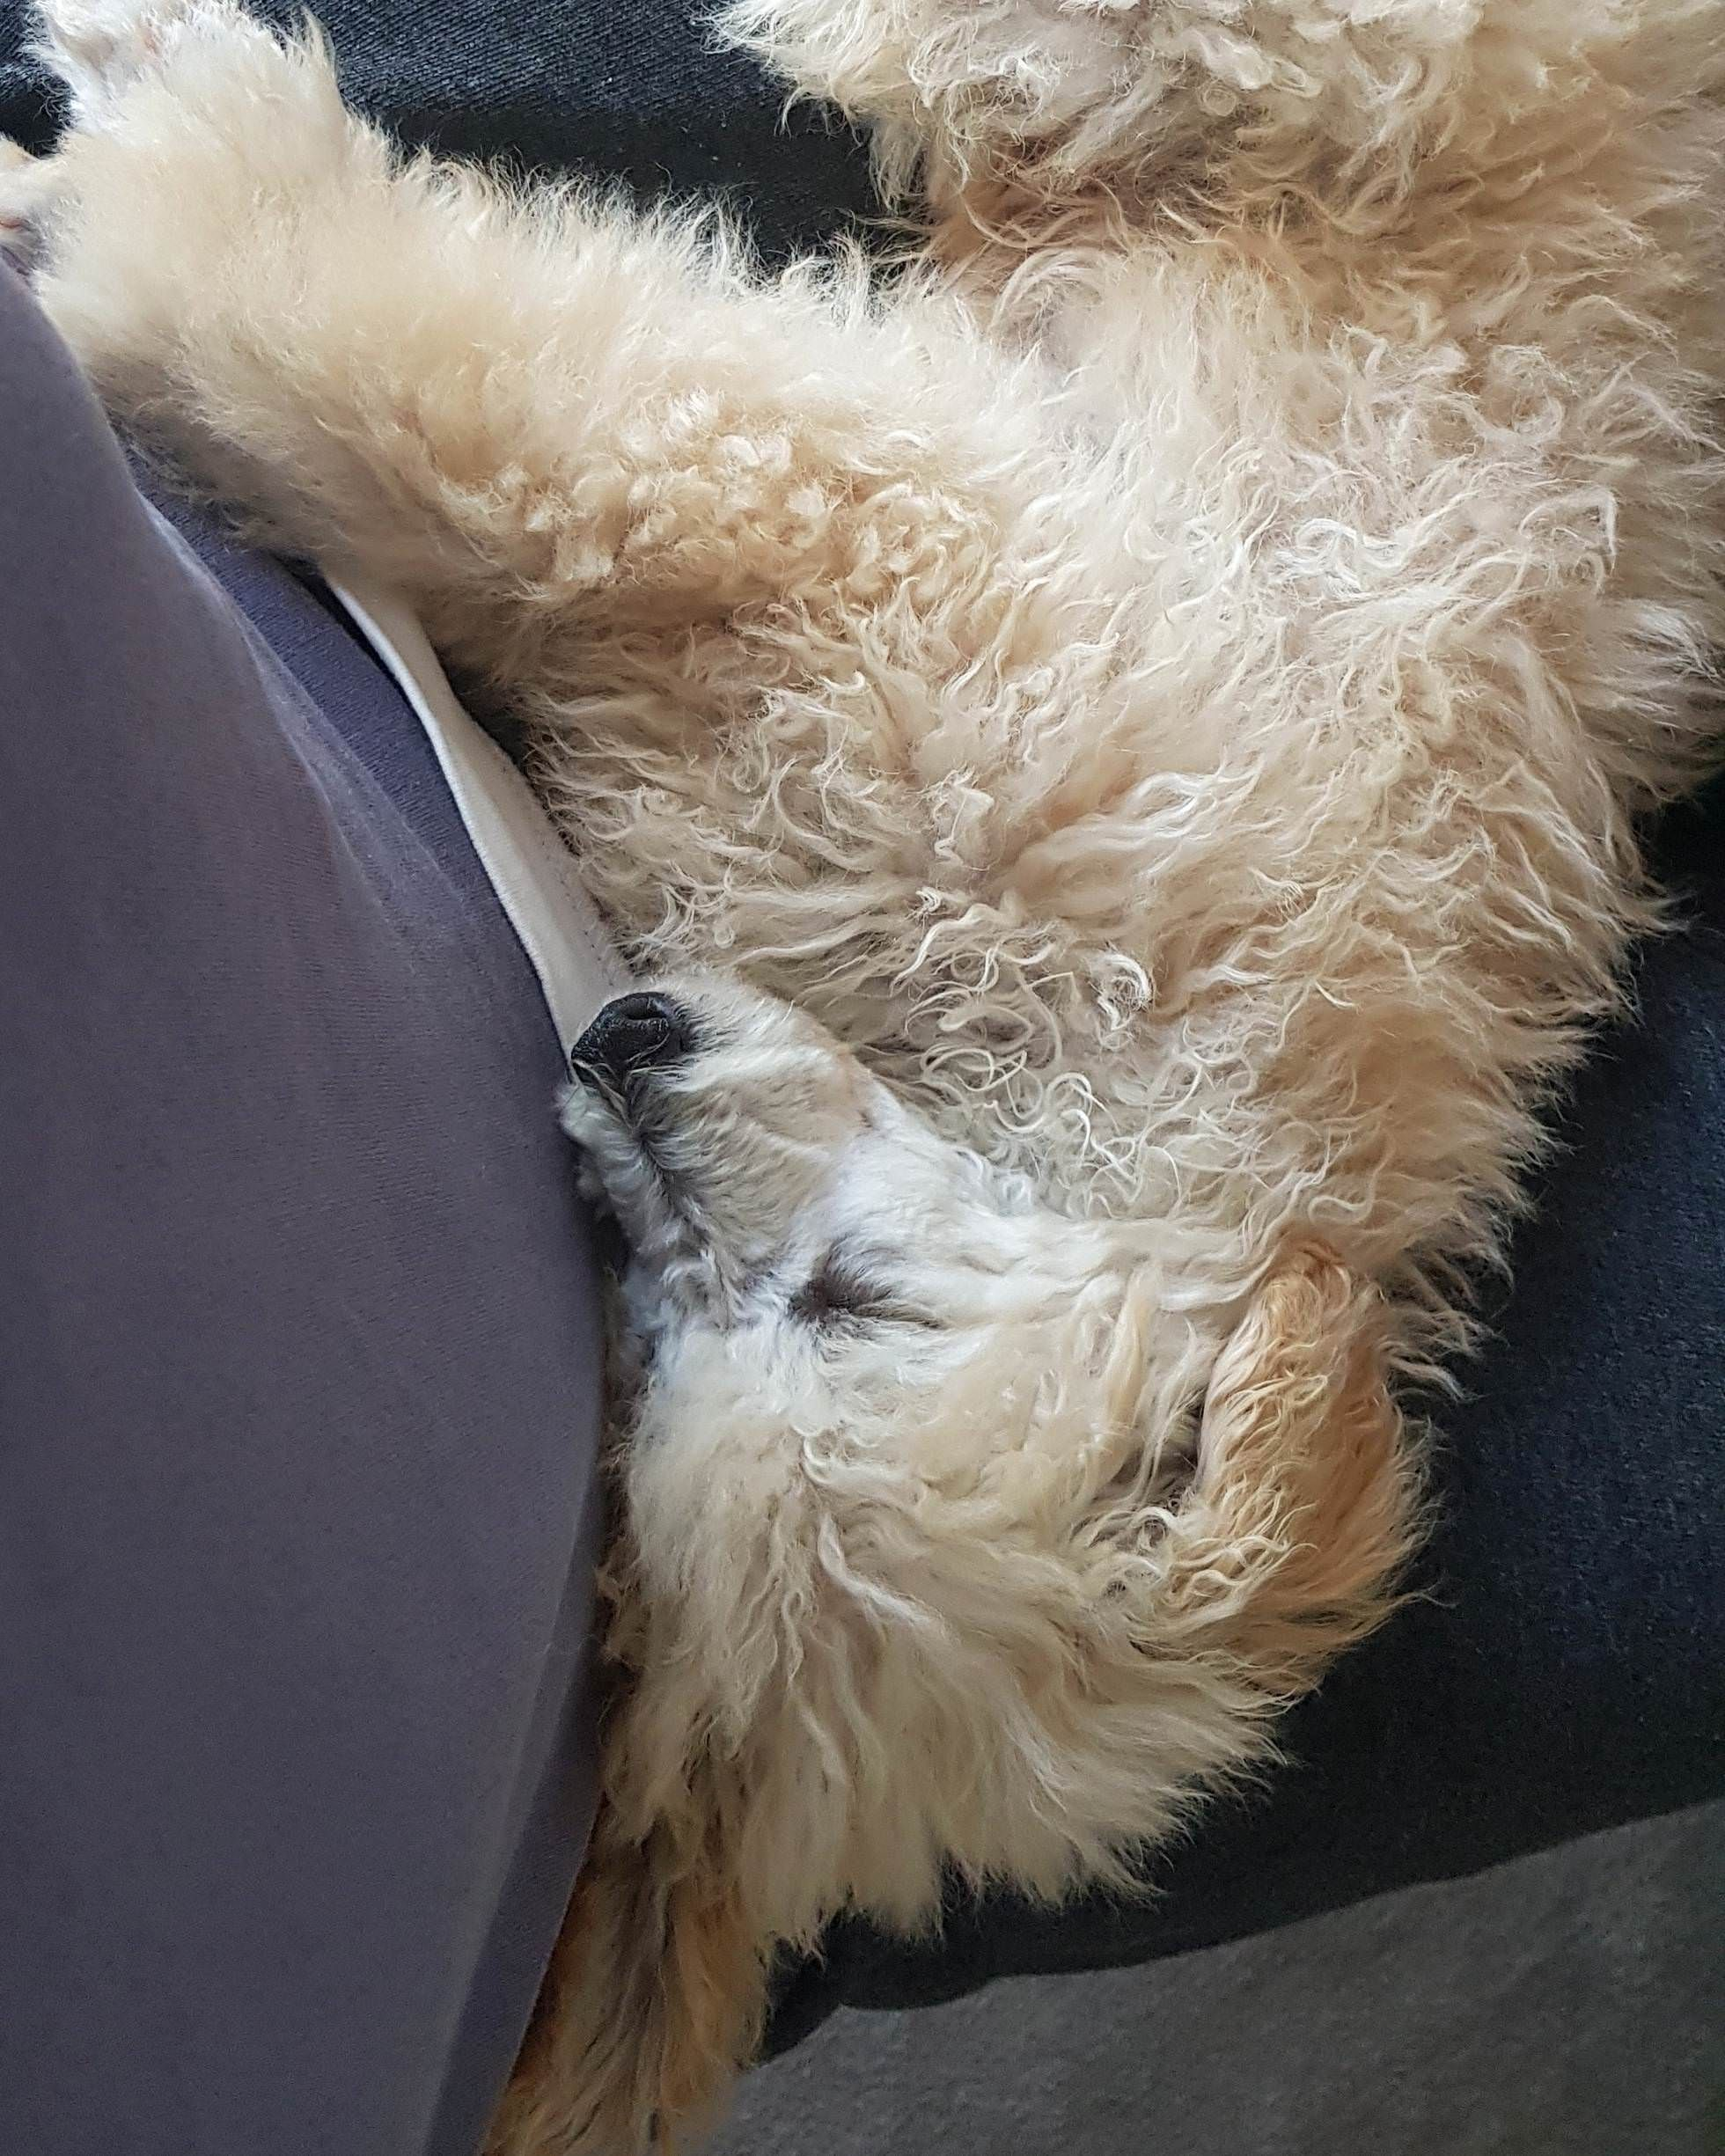 Pin by roverfetch on adorable pets in pinterest poodle